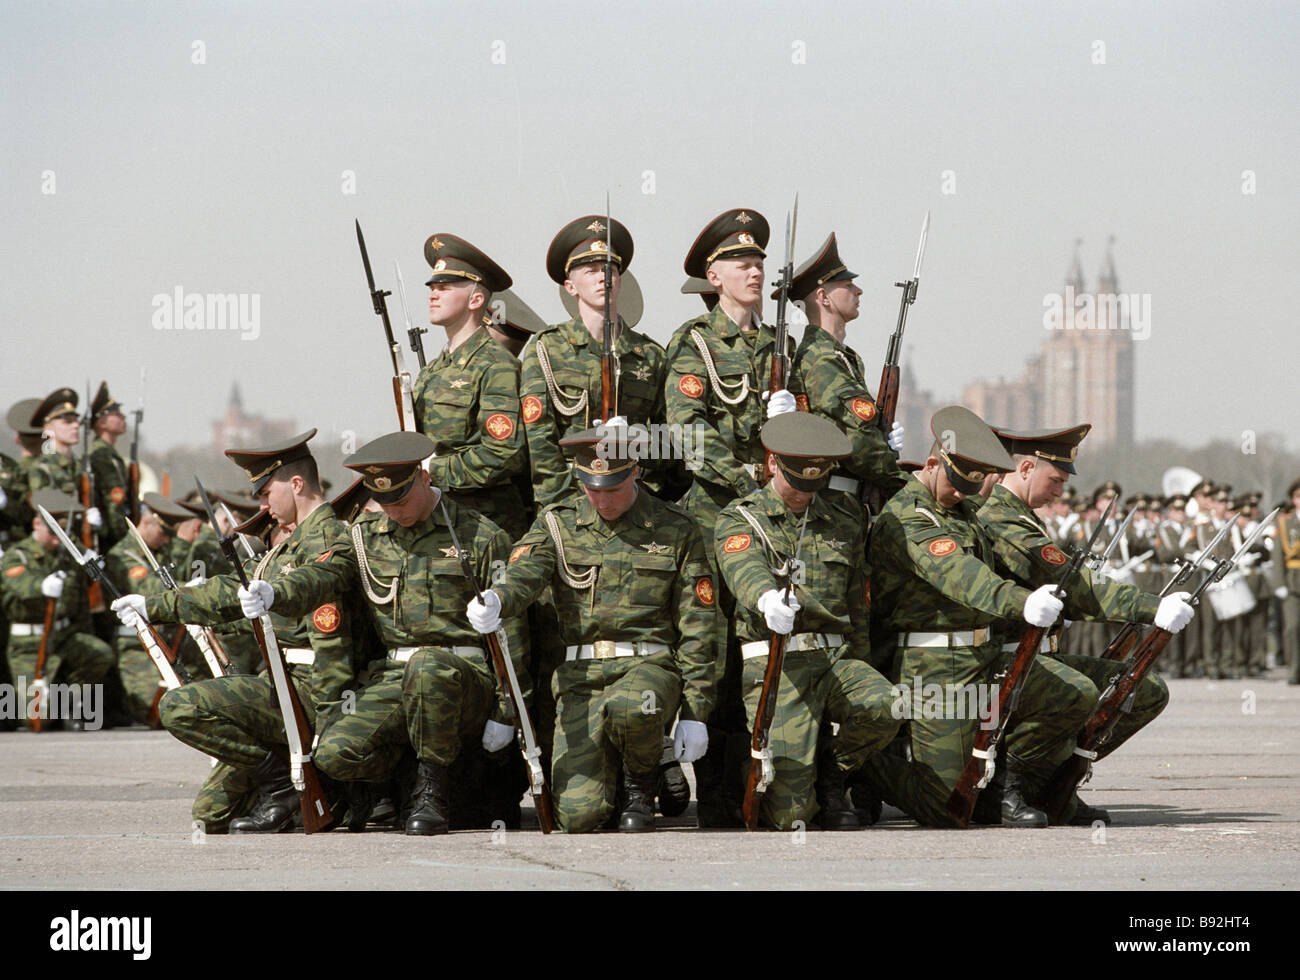 Dress rehearsal of the VE Day military parade Guard of honor performing - Stock Image